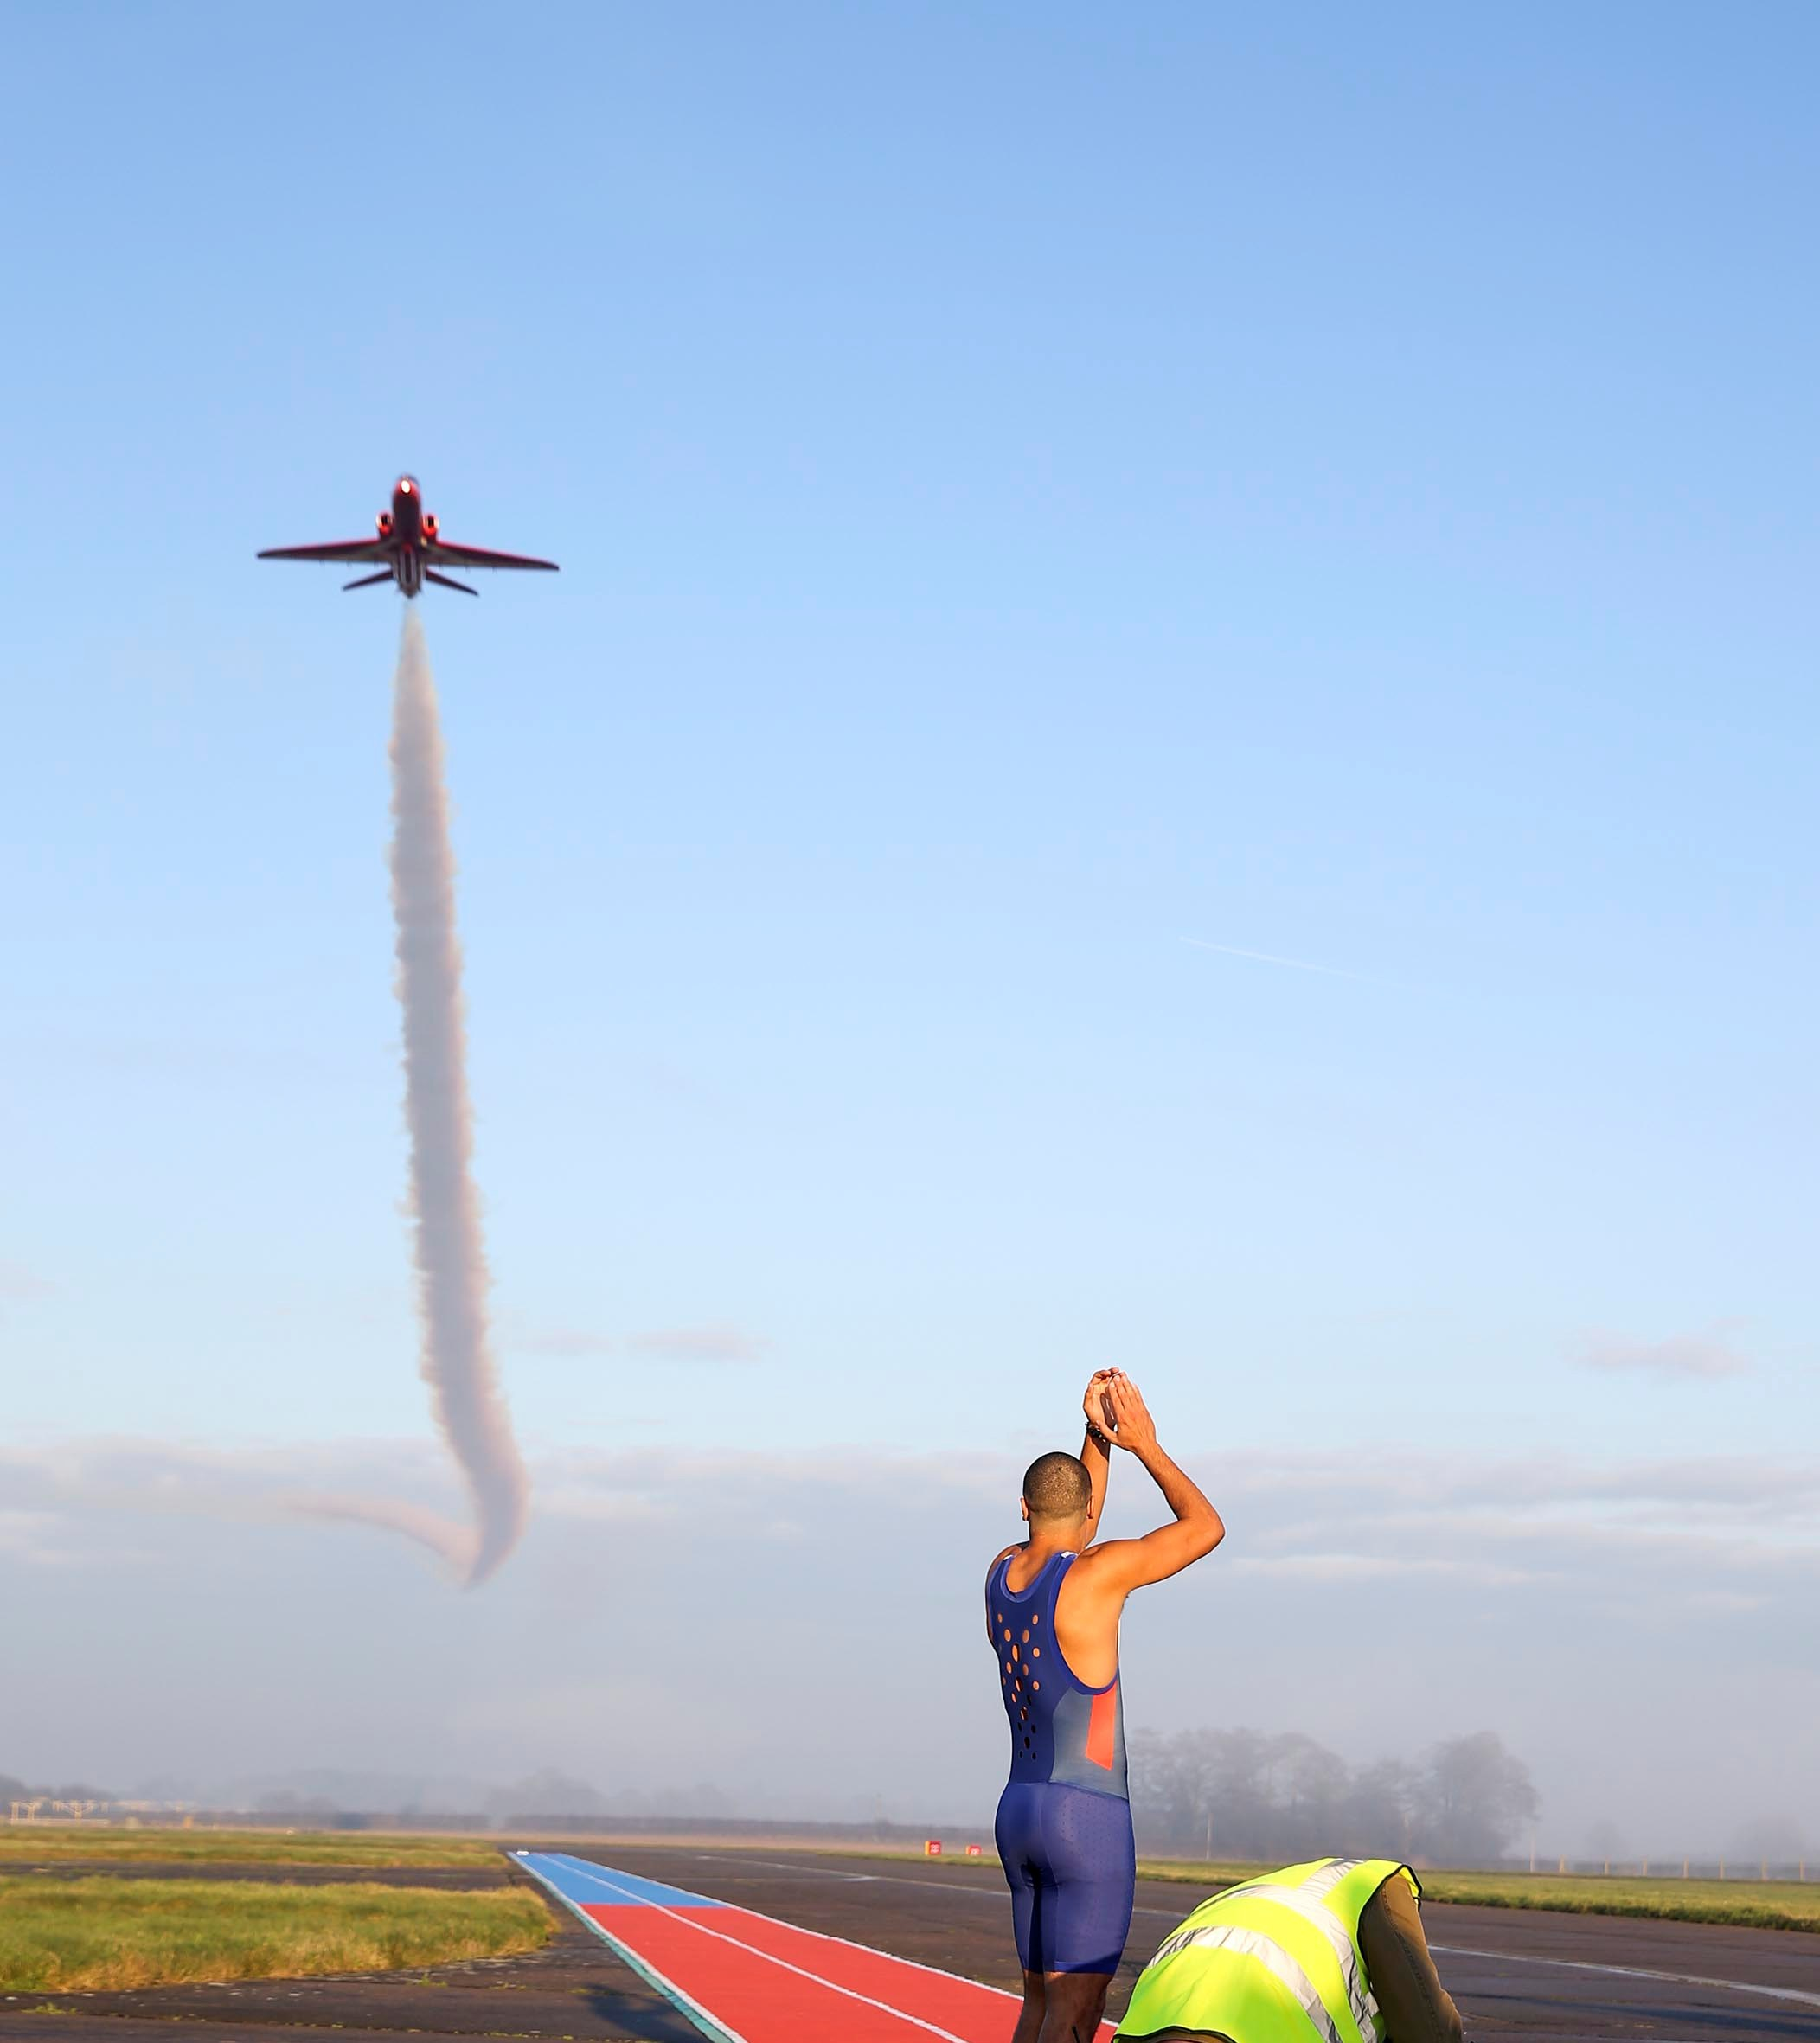 """ITV came to RAF Scampton over several days to film the new tv program """"Its Not Rocket Science"""". British 200m runner Adam Gemili raced a Red Arrows Hawk aircraft over a 100m distance. Presenters Romesh and Rachel Riley watched from the side of the runway. Image created by SAC Gina Edgcumbe"""